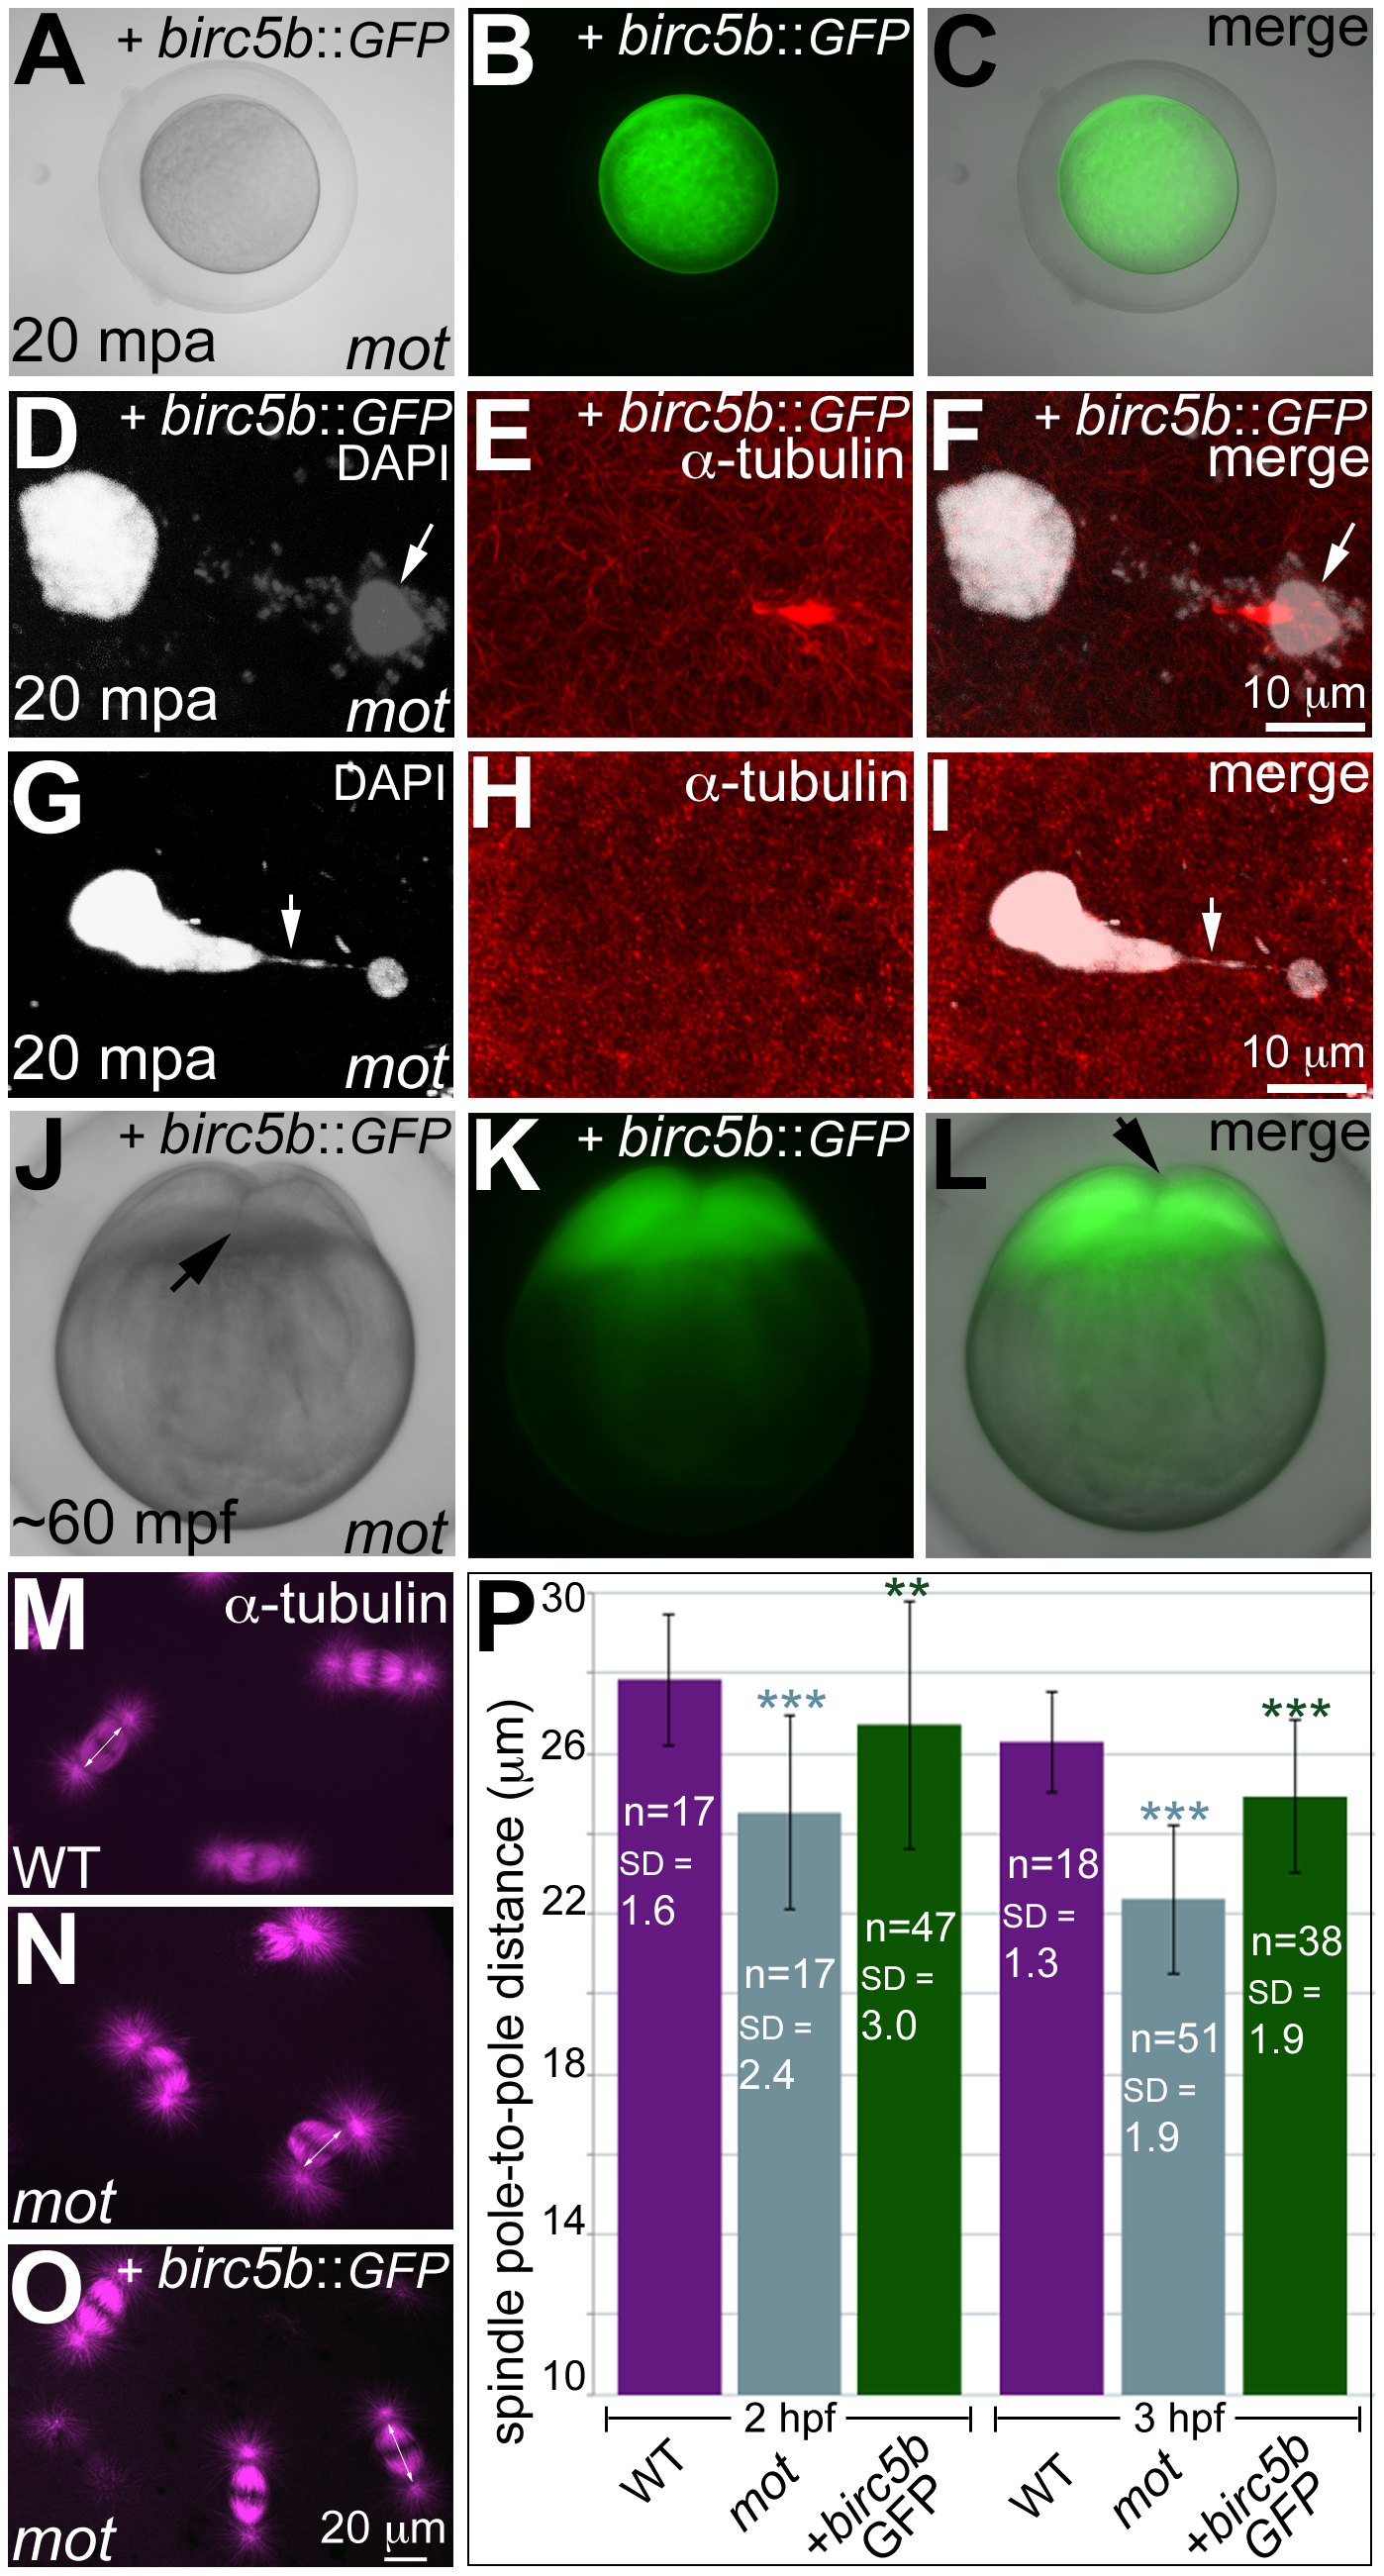 Wild-type <i>birc5b</i> rescues cell division defects in <i>motley</i> mutants.